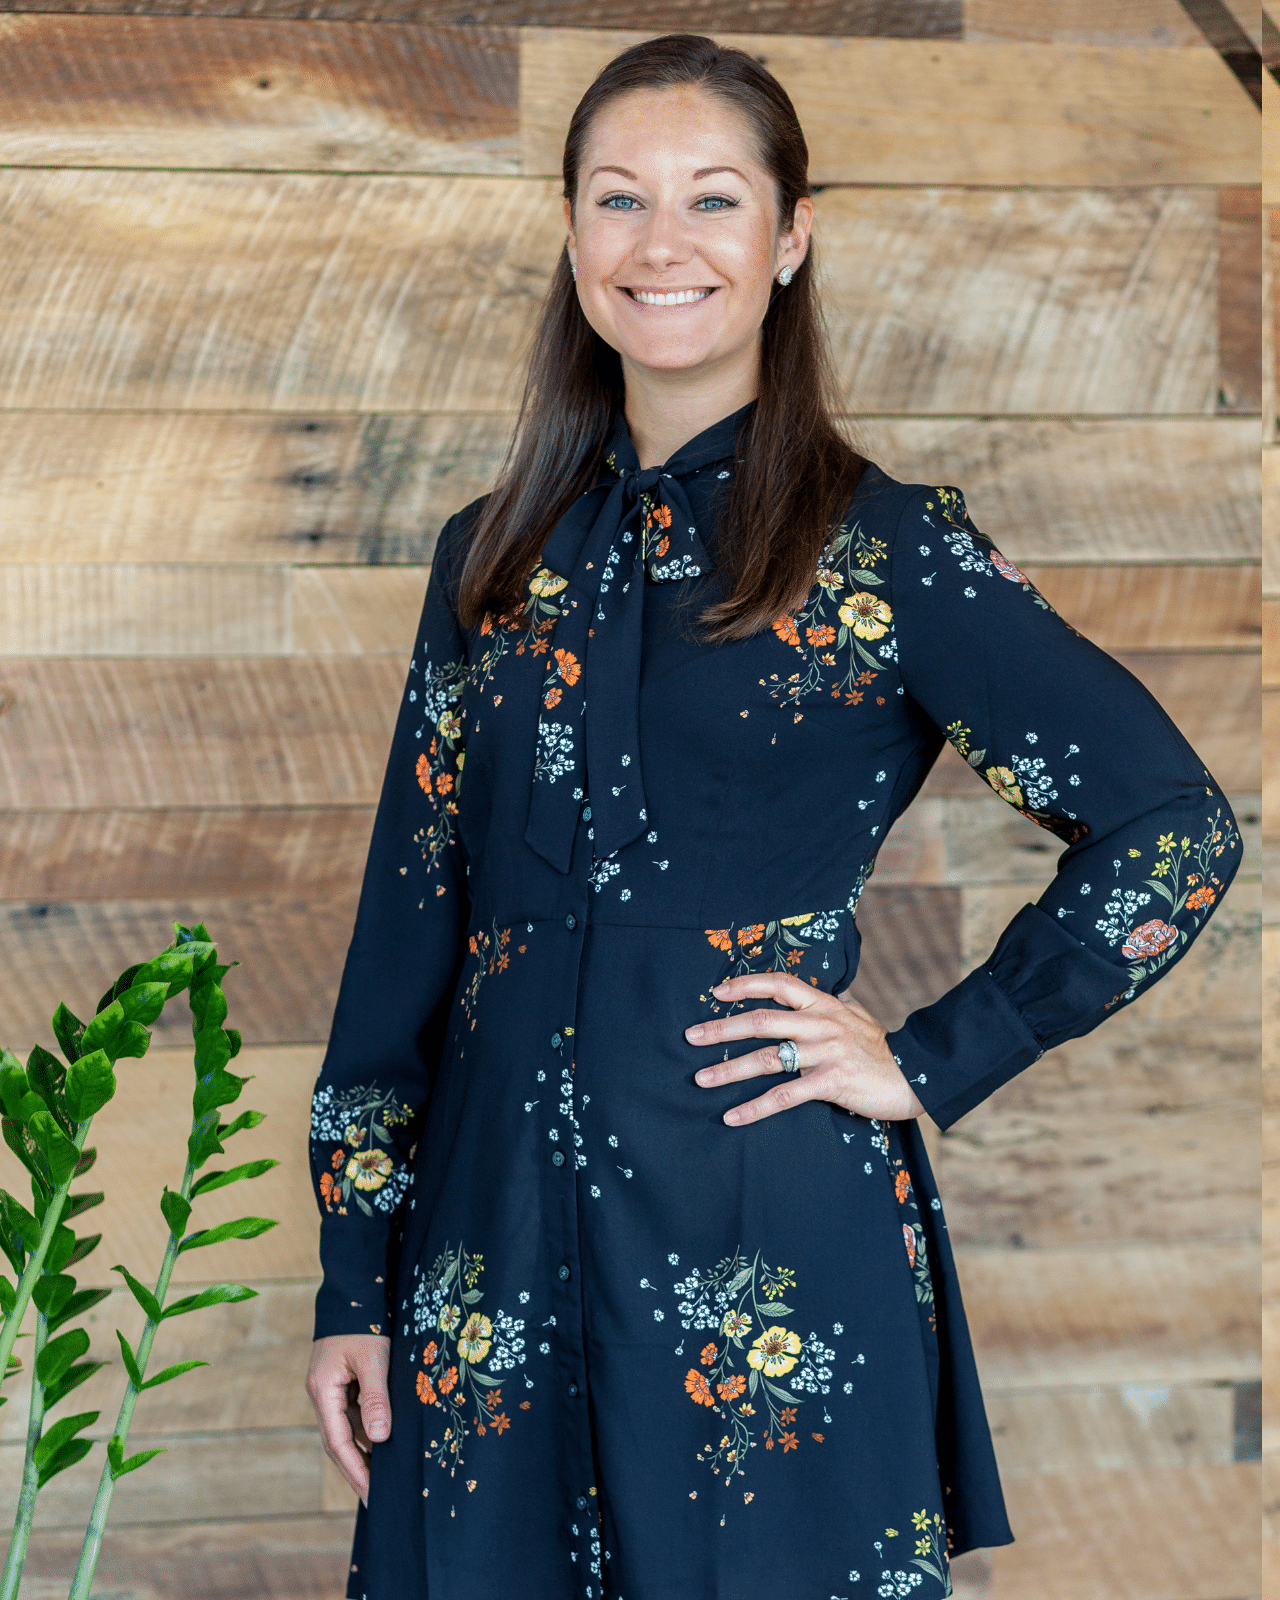 Dr. Abigail Emery, chiropractor and acupuncturist